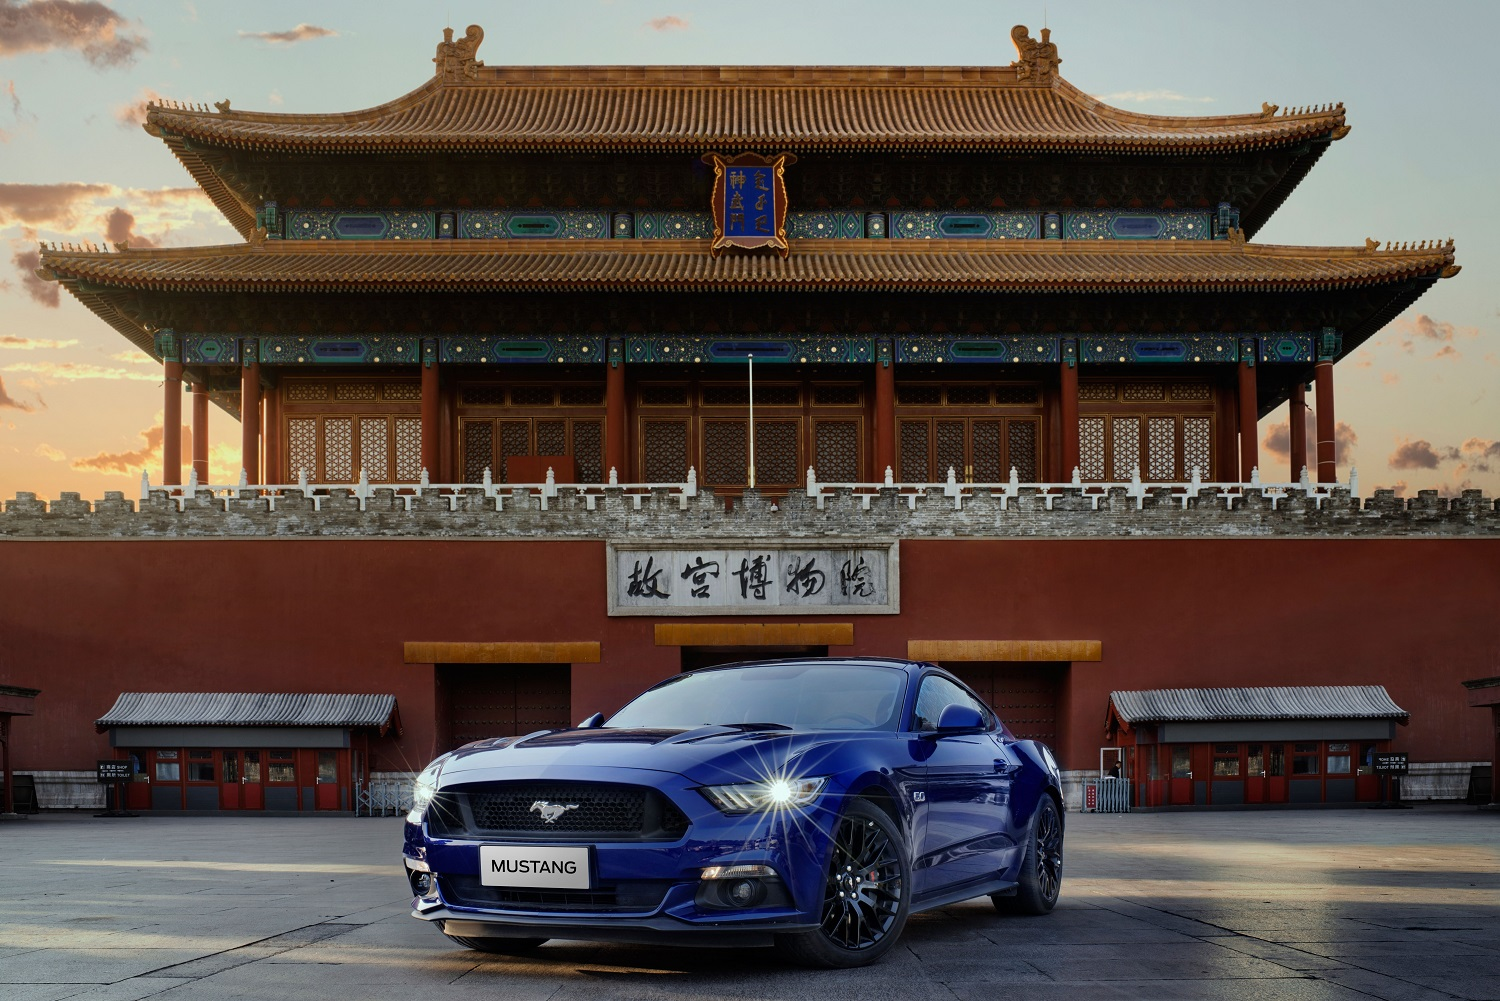 Mustang China2 Η Ford Mustang πρώτη σε ταξινομήσεις στην κατηγορία sports coupe σε όλο τον κόσμο Bestseller, COUPE, Ford, Ford Mustang, Muscle cars